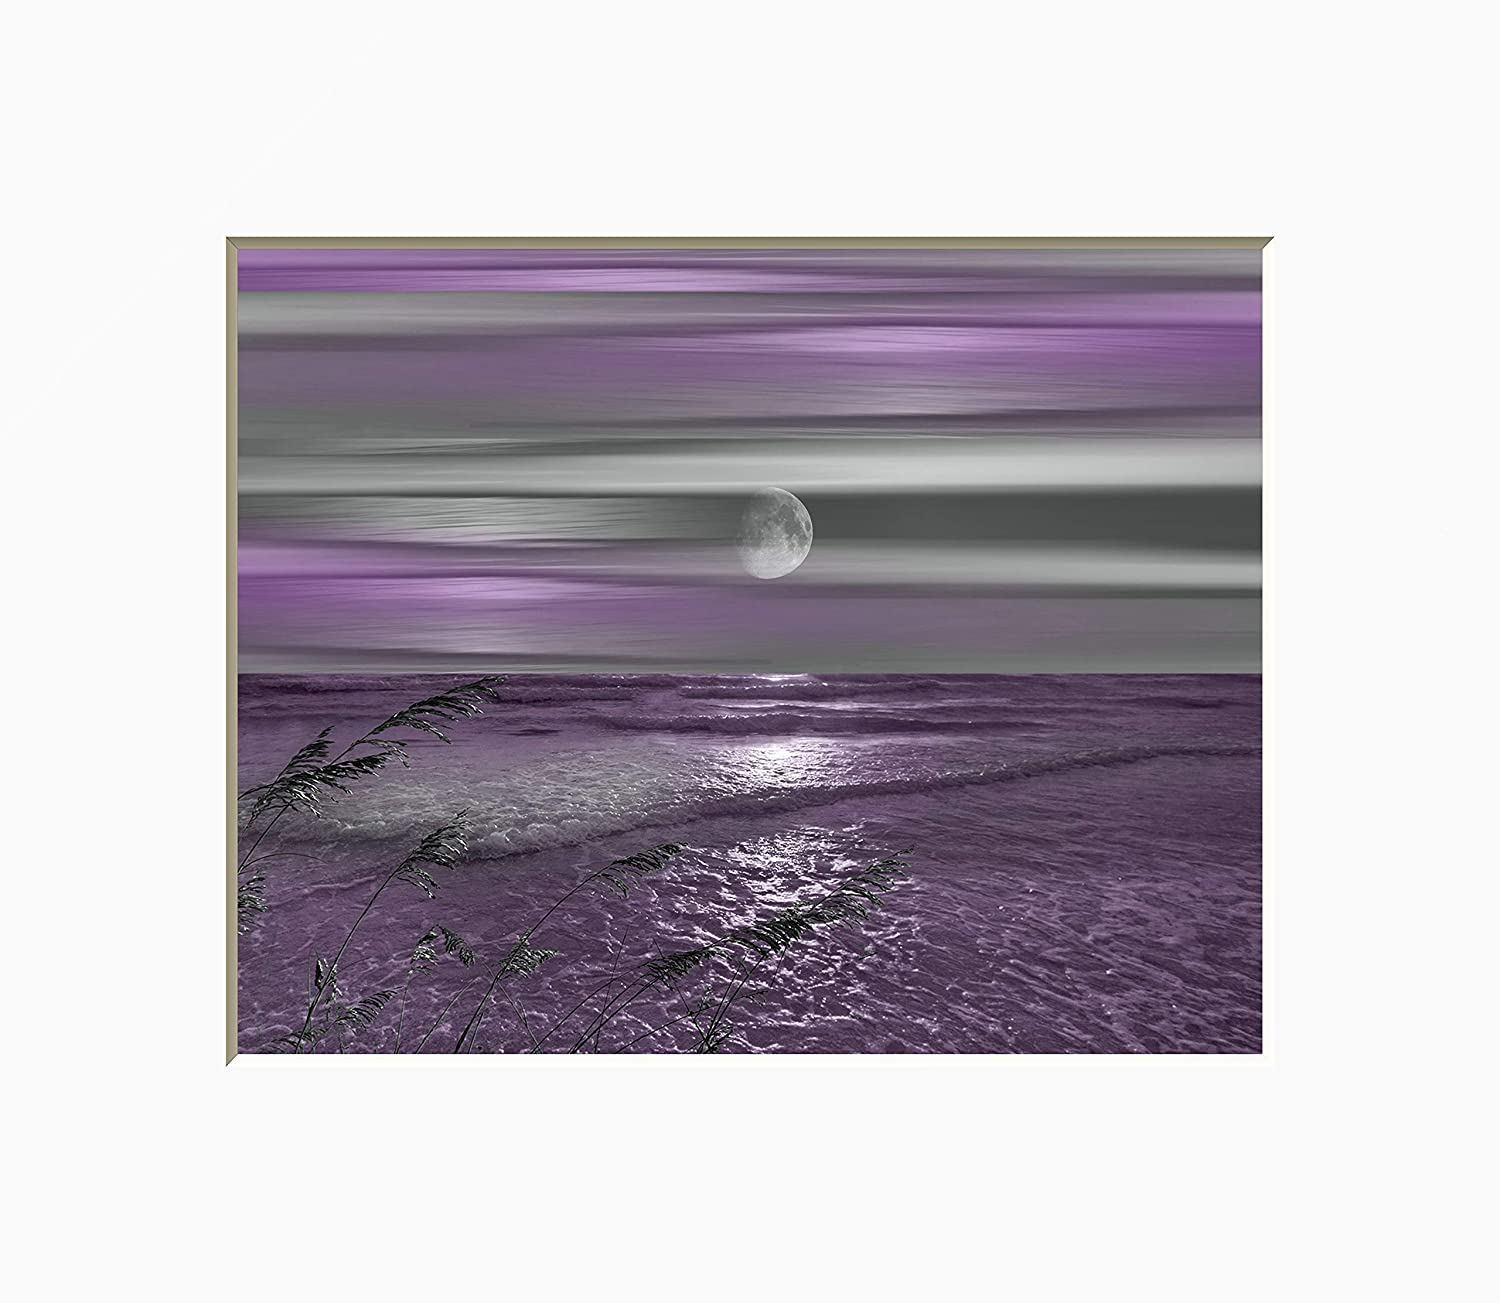 Purple Wall Decor, Coastal, Ocean Moon, Modern Bathroom, Bedroom Matted  Wall Art Picture (Size Options)